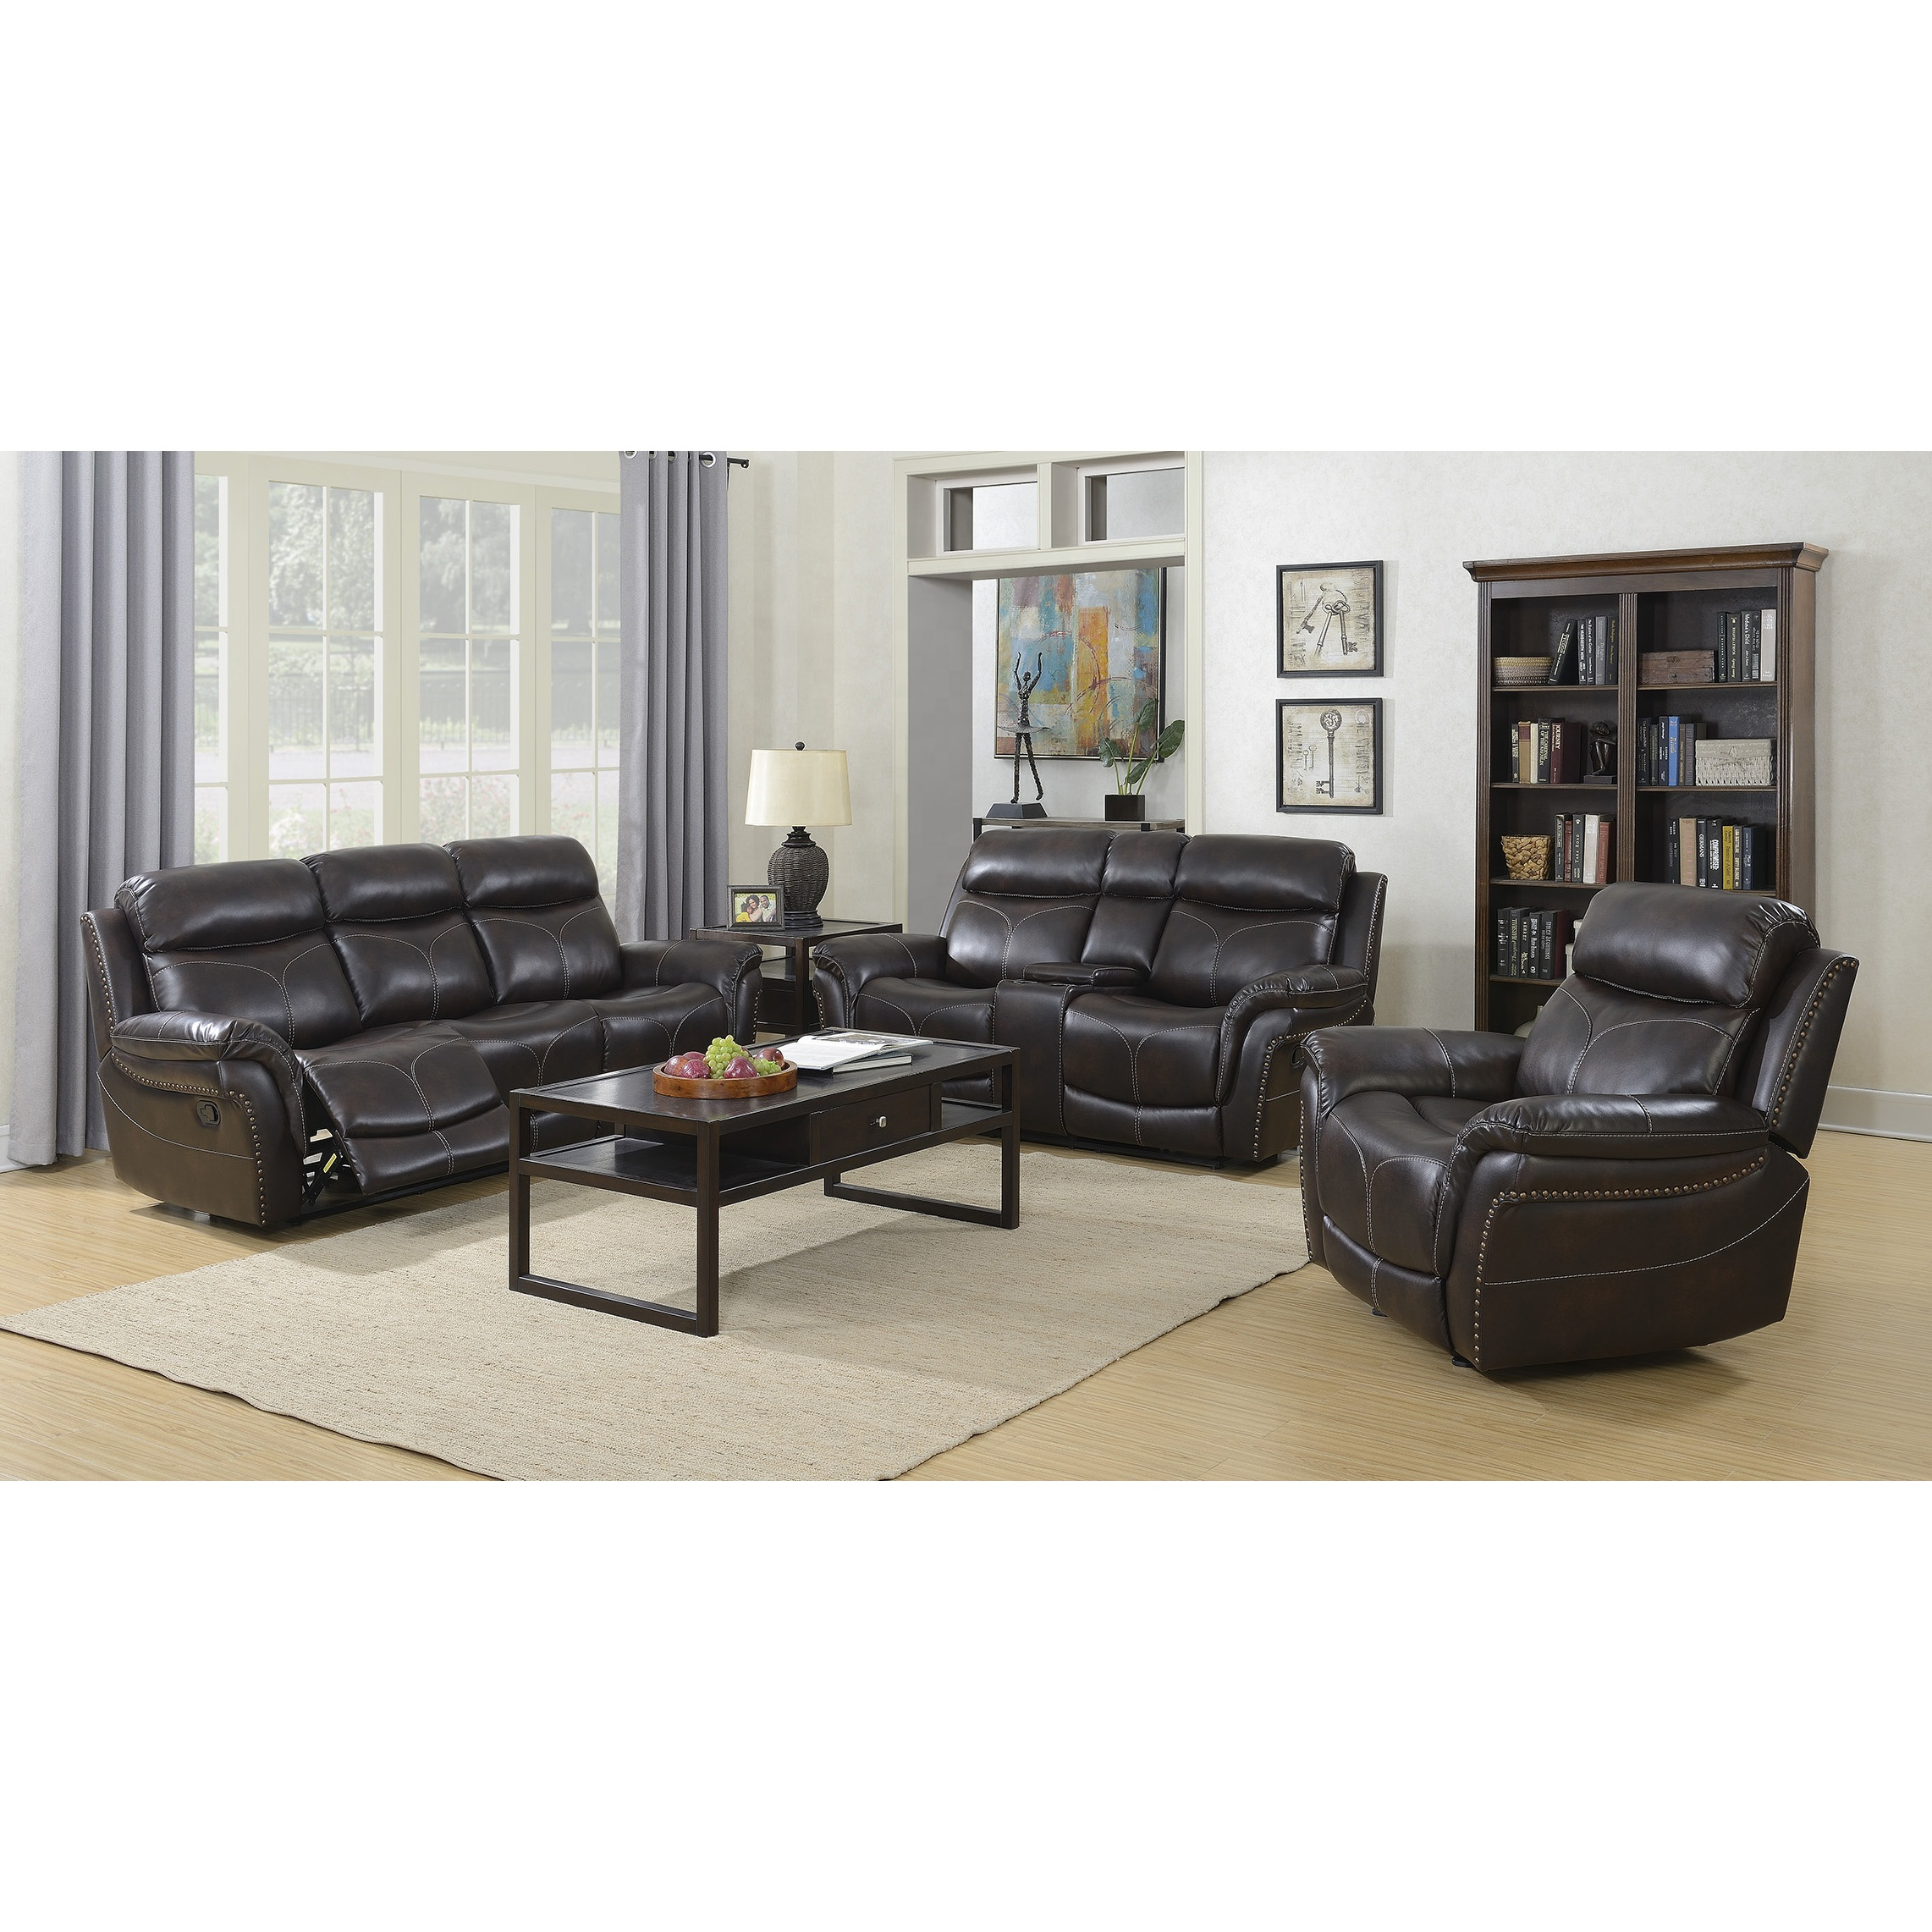 Frank Furniture Wholesale Price Hot Selling Fashion Leather Electric  Recliner Sofa - Buy Recliner Sofa,Leather Recliner Sofa,Electric Recliner  Sofa ...